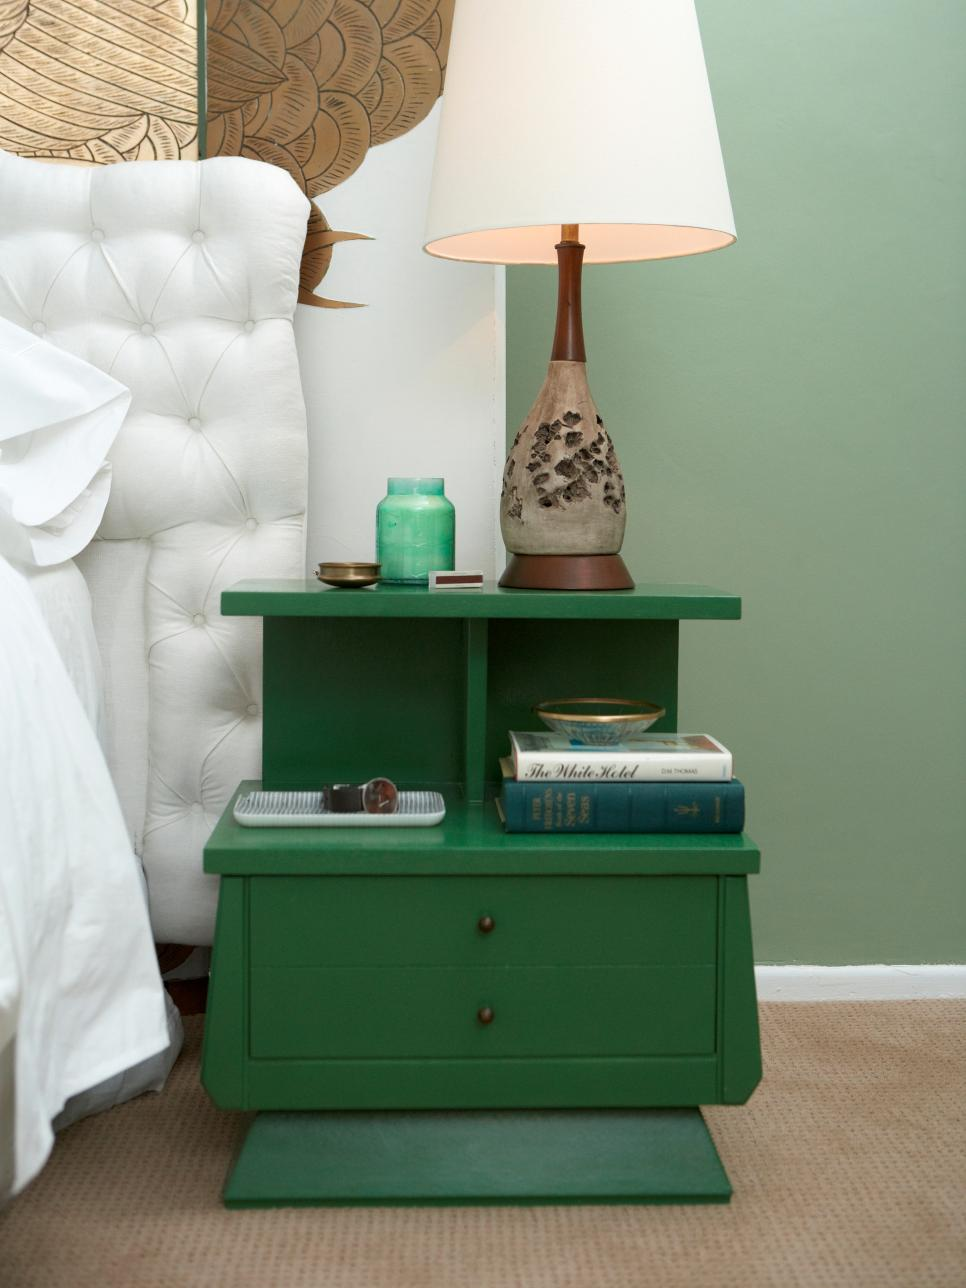 22 Clever Ways to Repurpose Furniture | Do it yourself ...